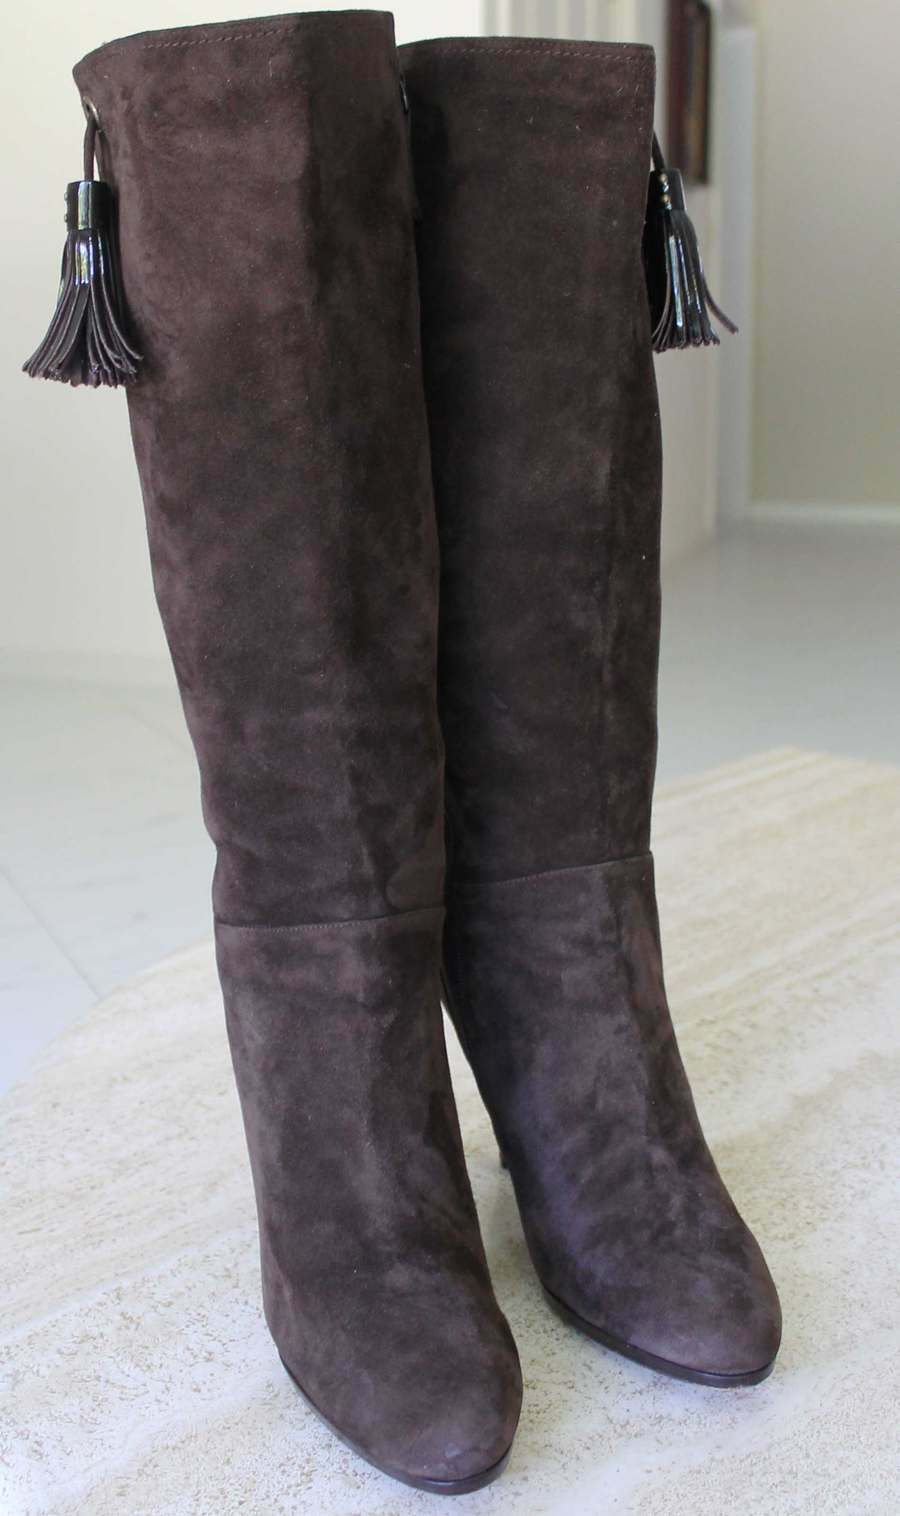 COLE HAAN  AIR BROWN SUEDE LEATHER KNEE HIGH BOOTS WOMEN SZ 9.5 B